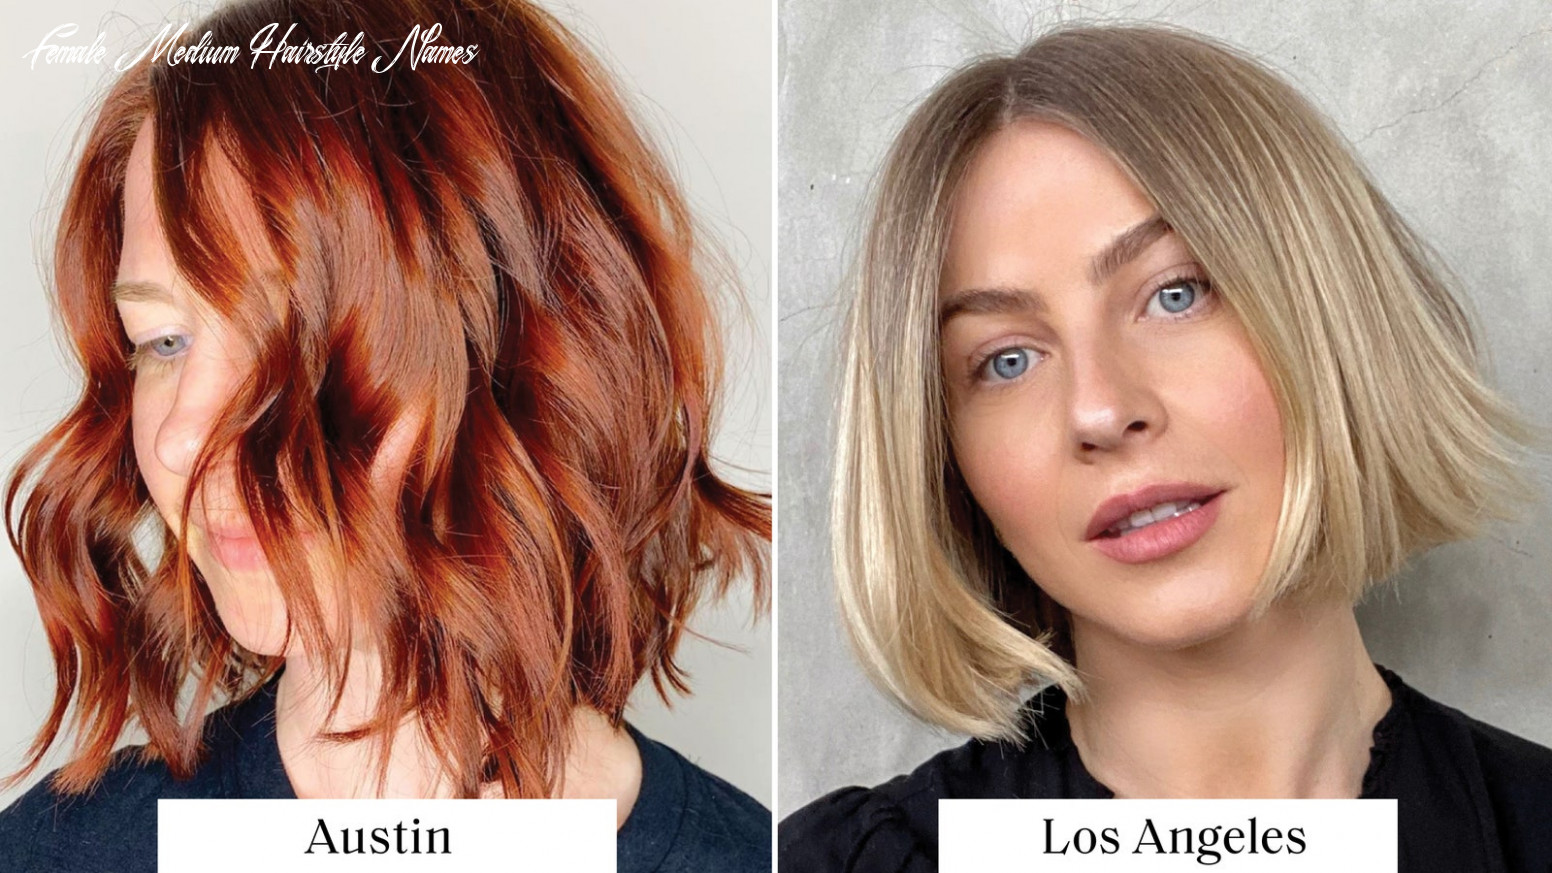 Best haircuts for 9: 9 popular haircut ideas to try | glamour female medium hairstyle names